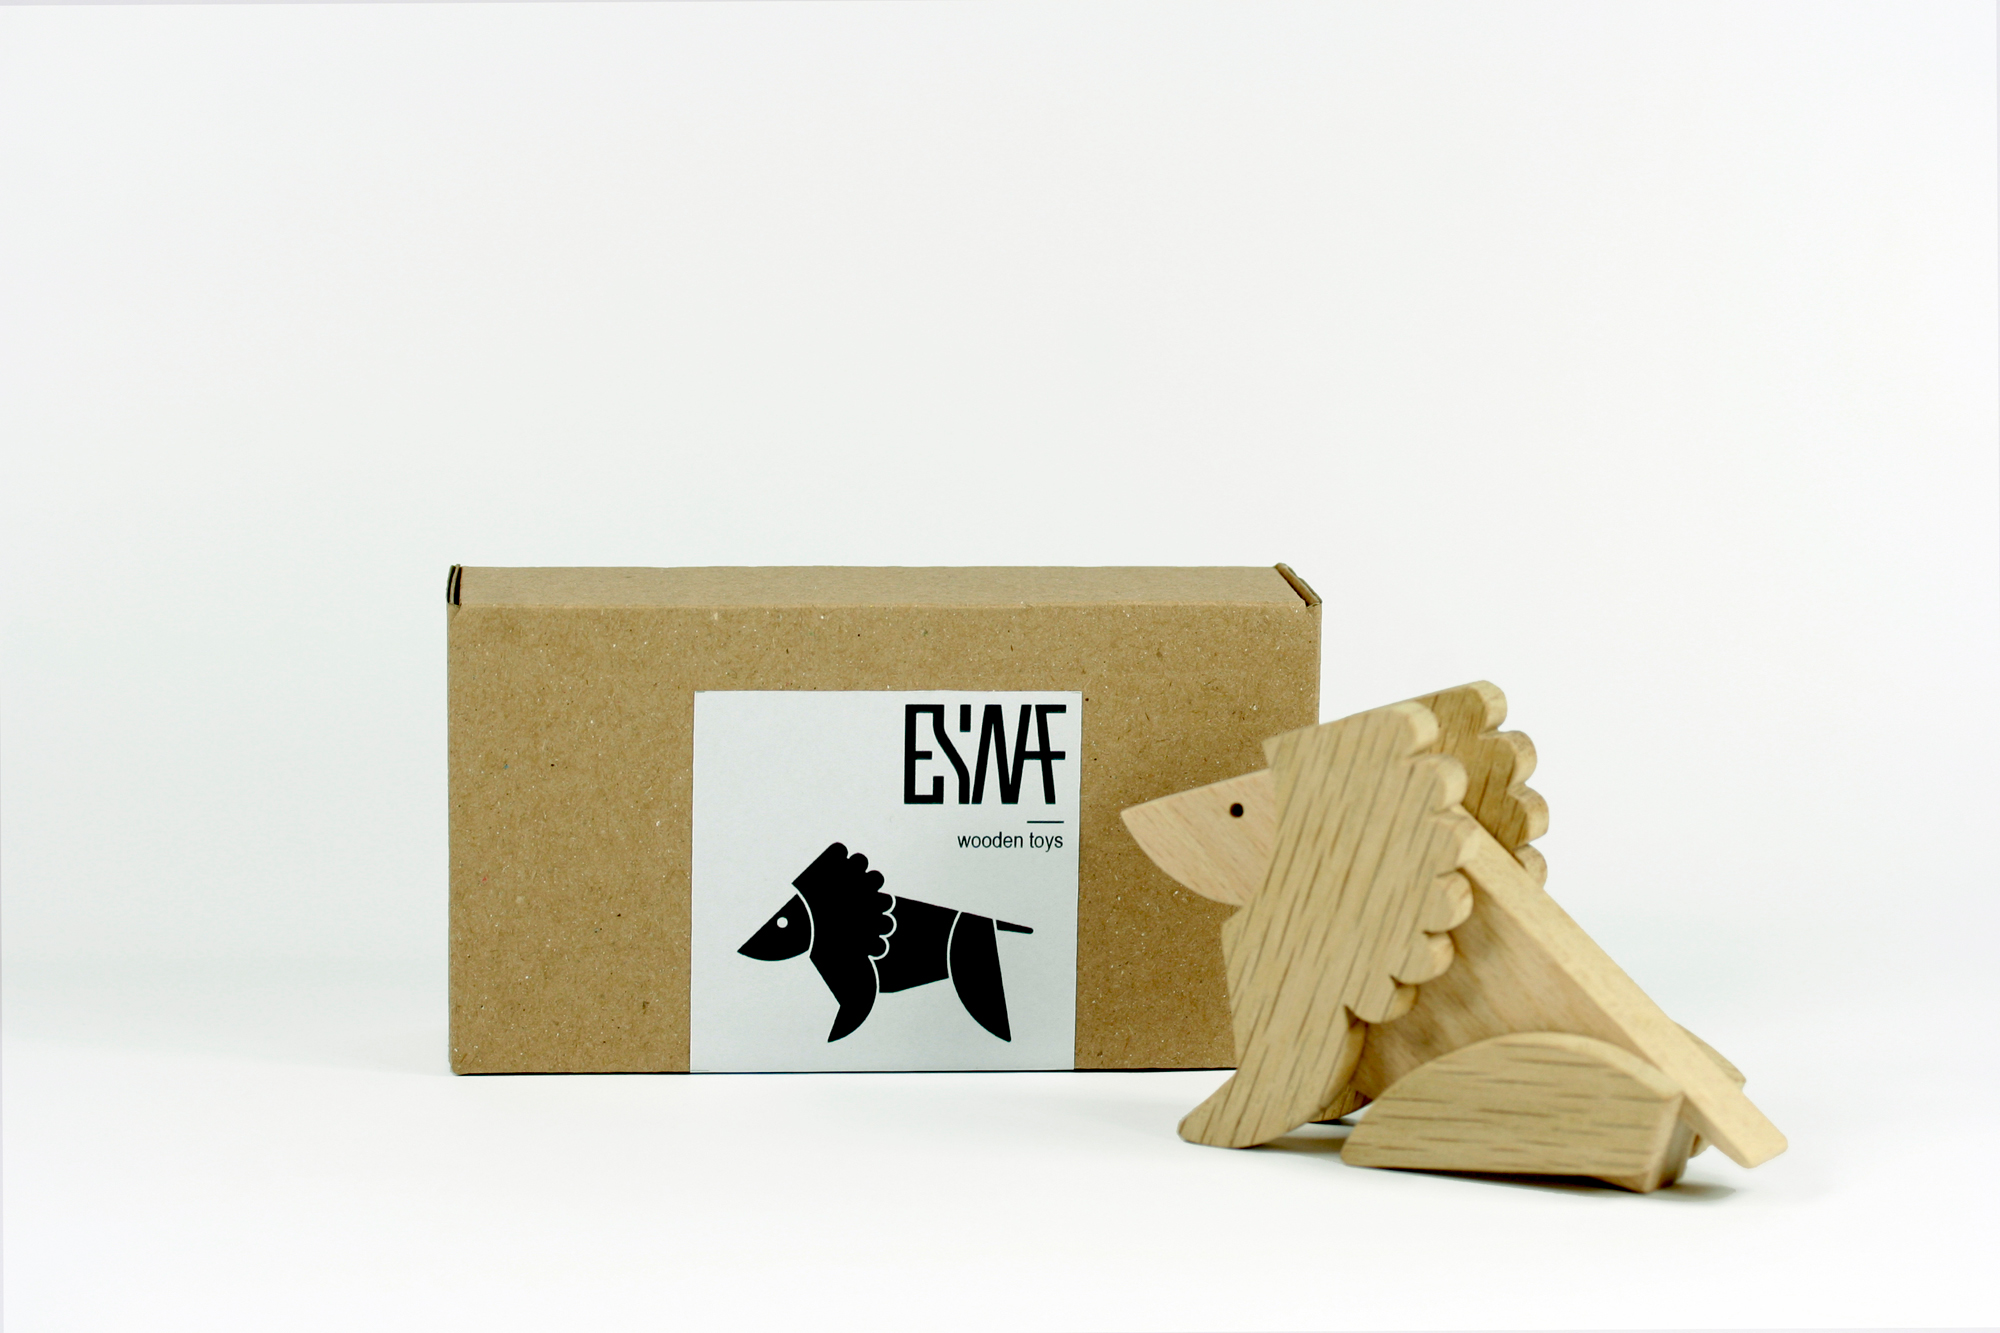 ESNAF wooden toys on Behance